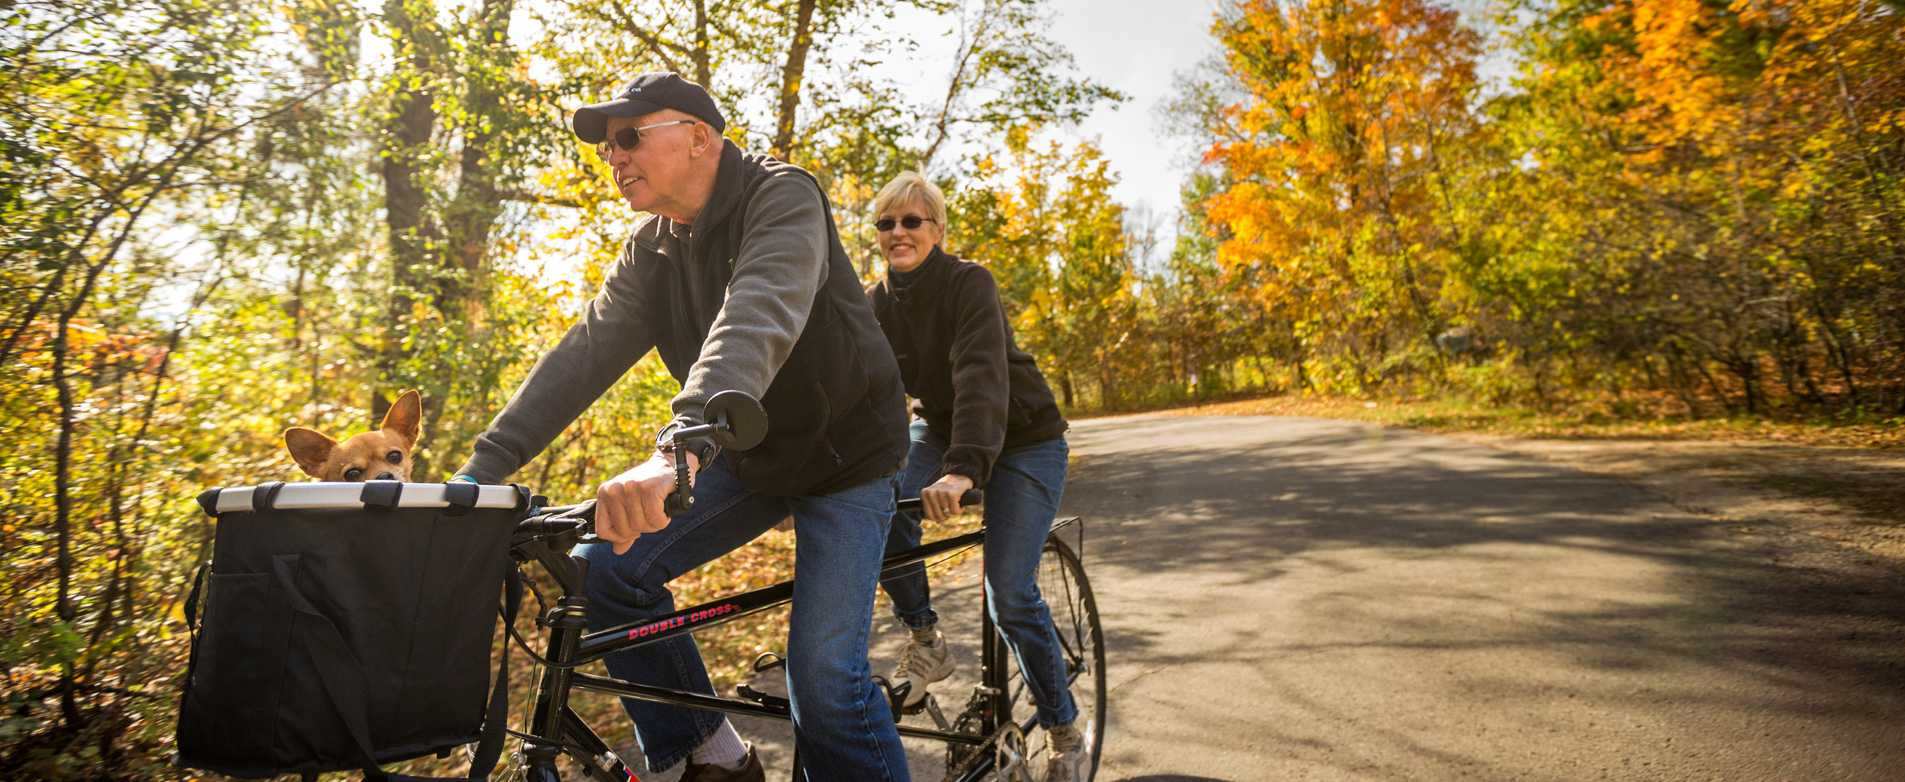 Couple-Riding-Tandem-Bike-on-Fall-Day-Perrot-State-Park-2